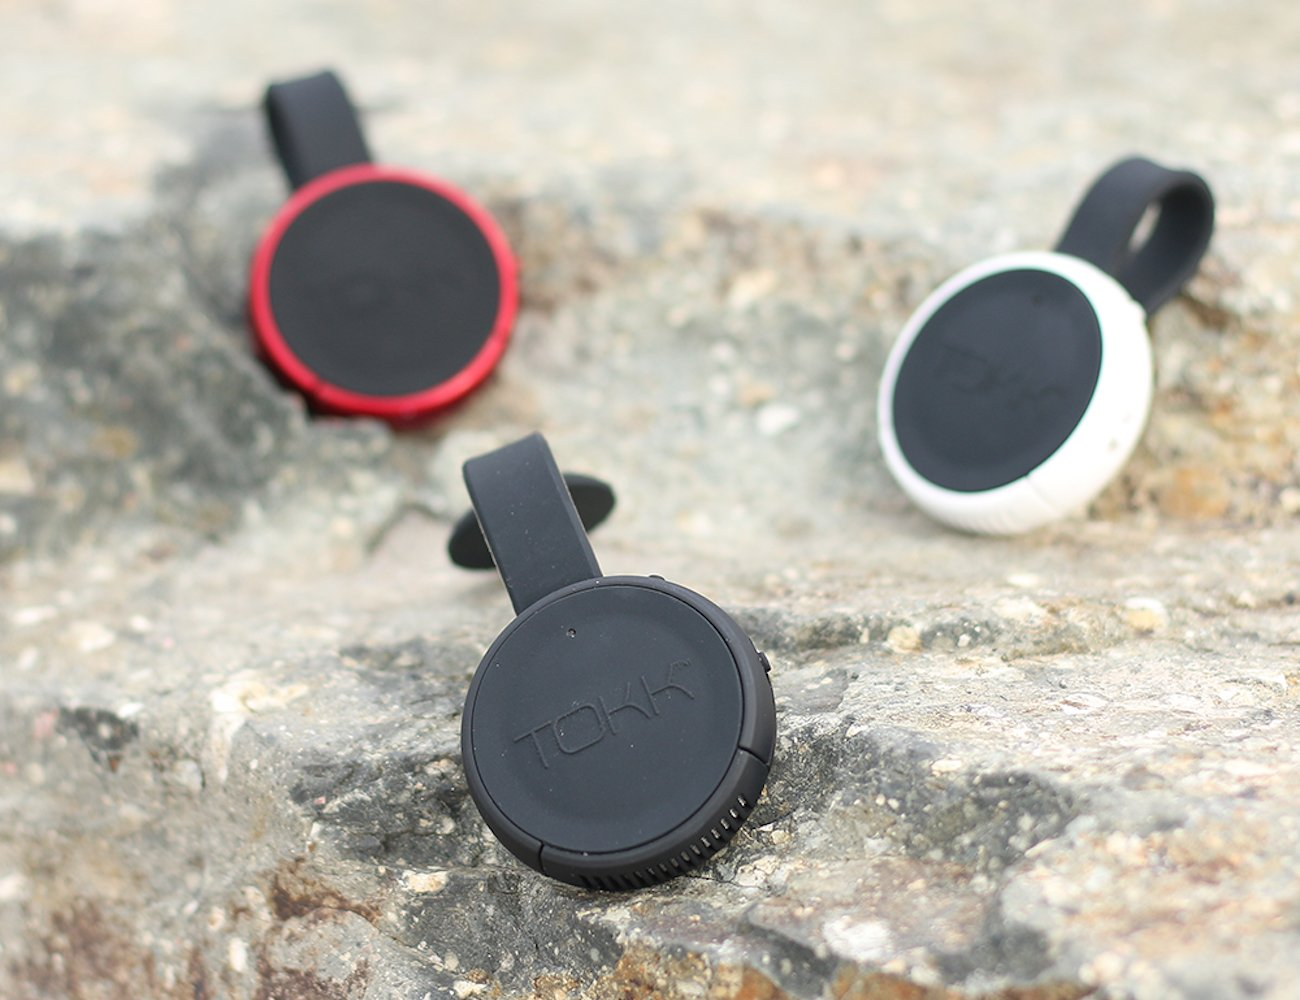 TOKK Smart Wearable Assistant Review » The Gadget Flow